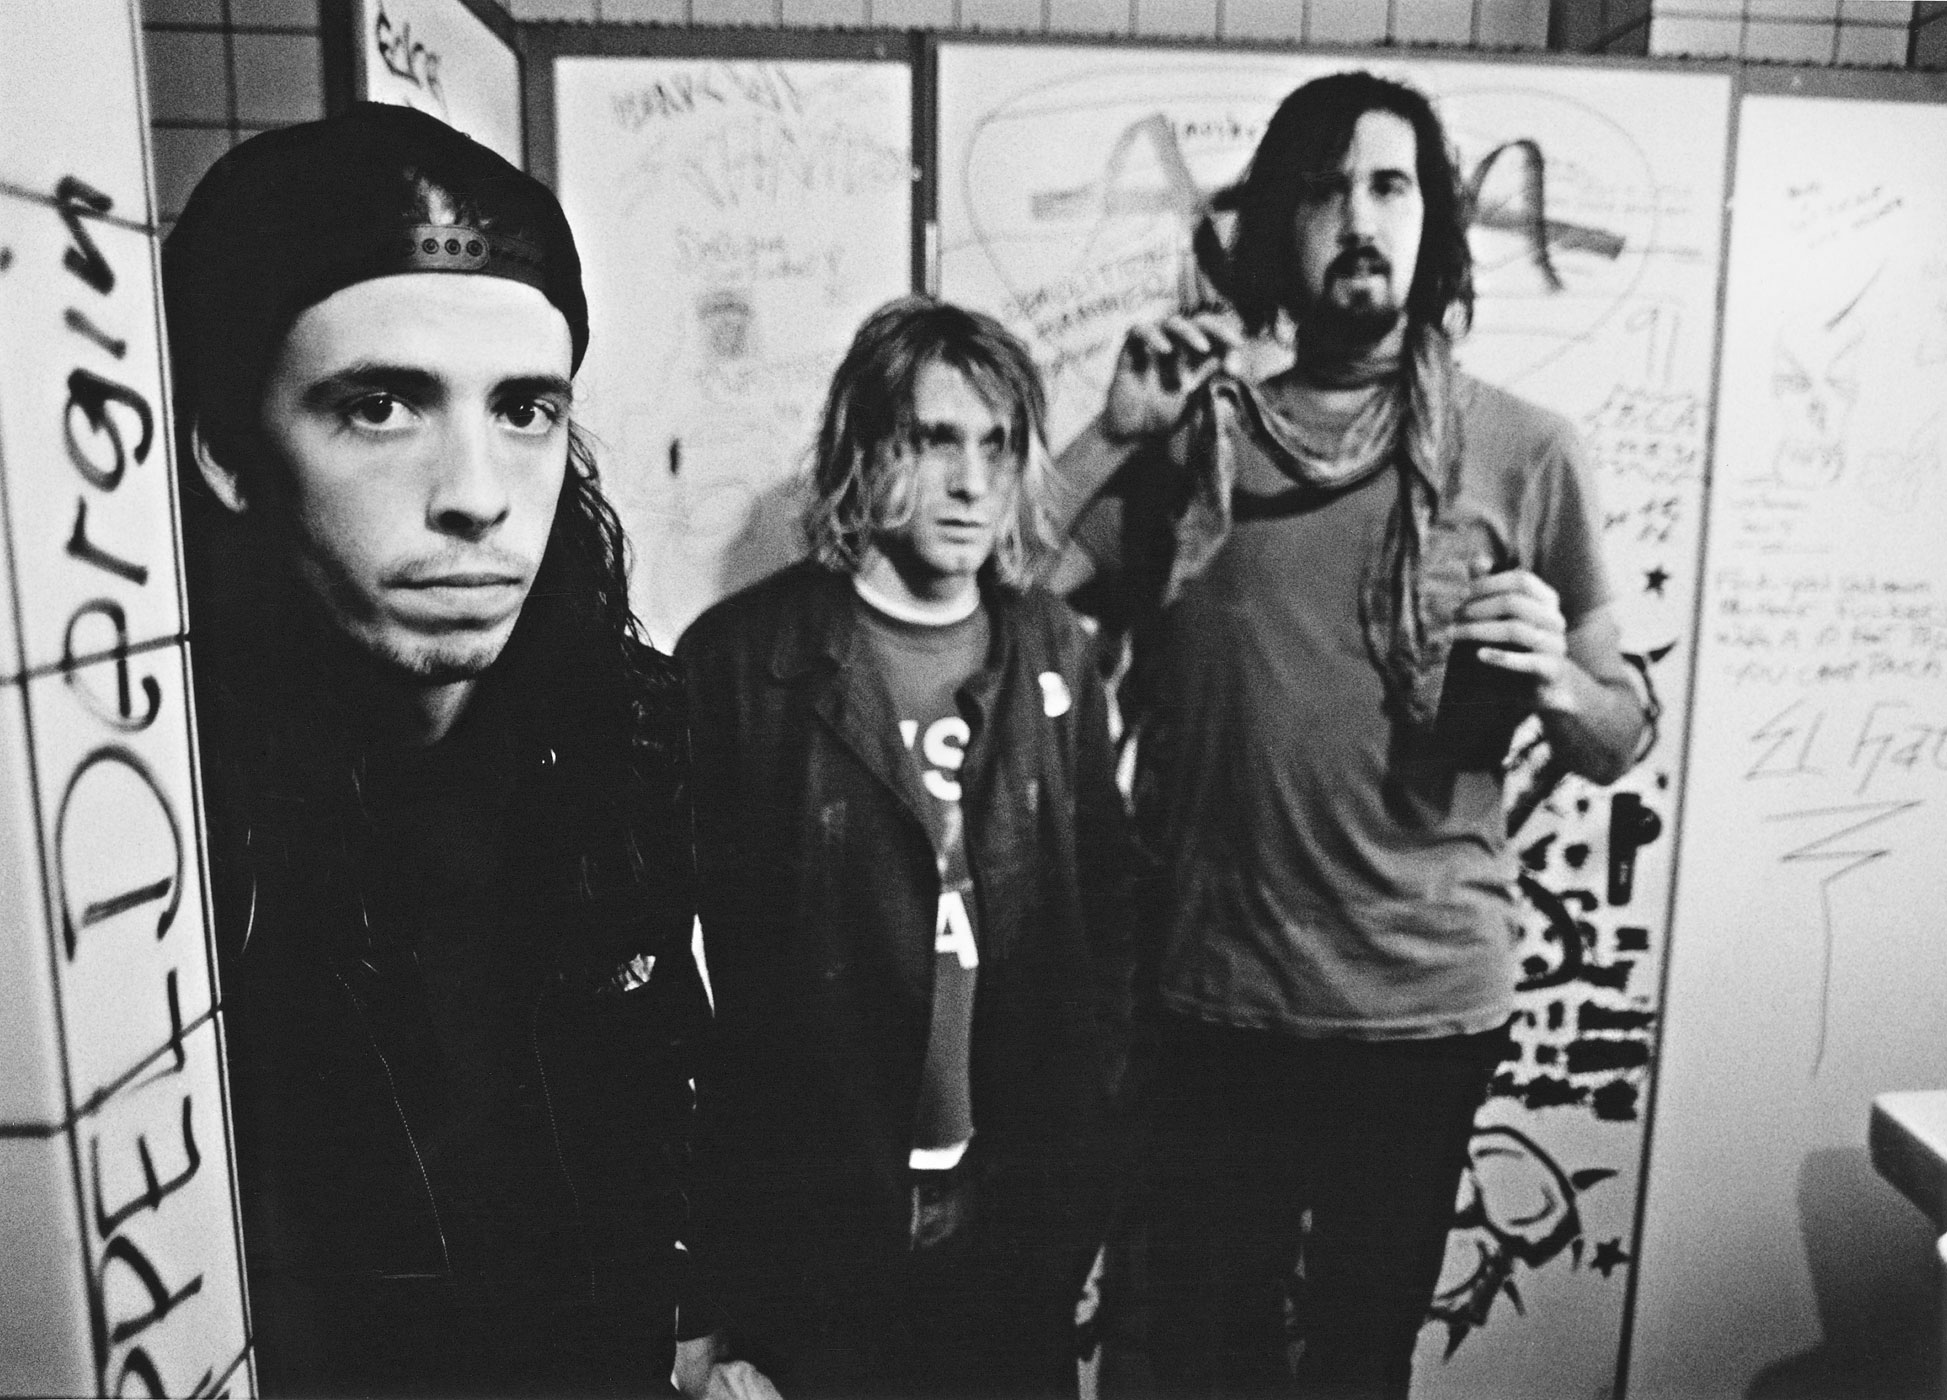 Nirvana backstage in Frankfurt, Germany, on November 12, 1991. From left to right: drummer Dave Grohl, singer and guitarist Kurt Cobain and bassist Krist Novoselic.